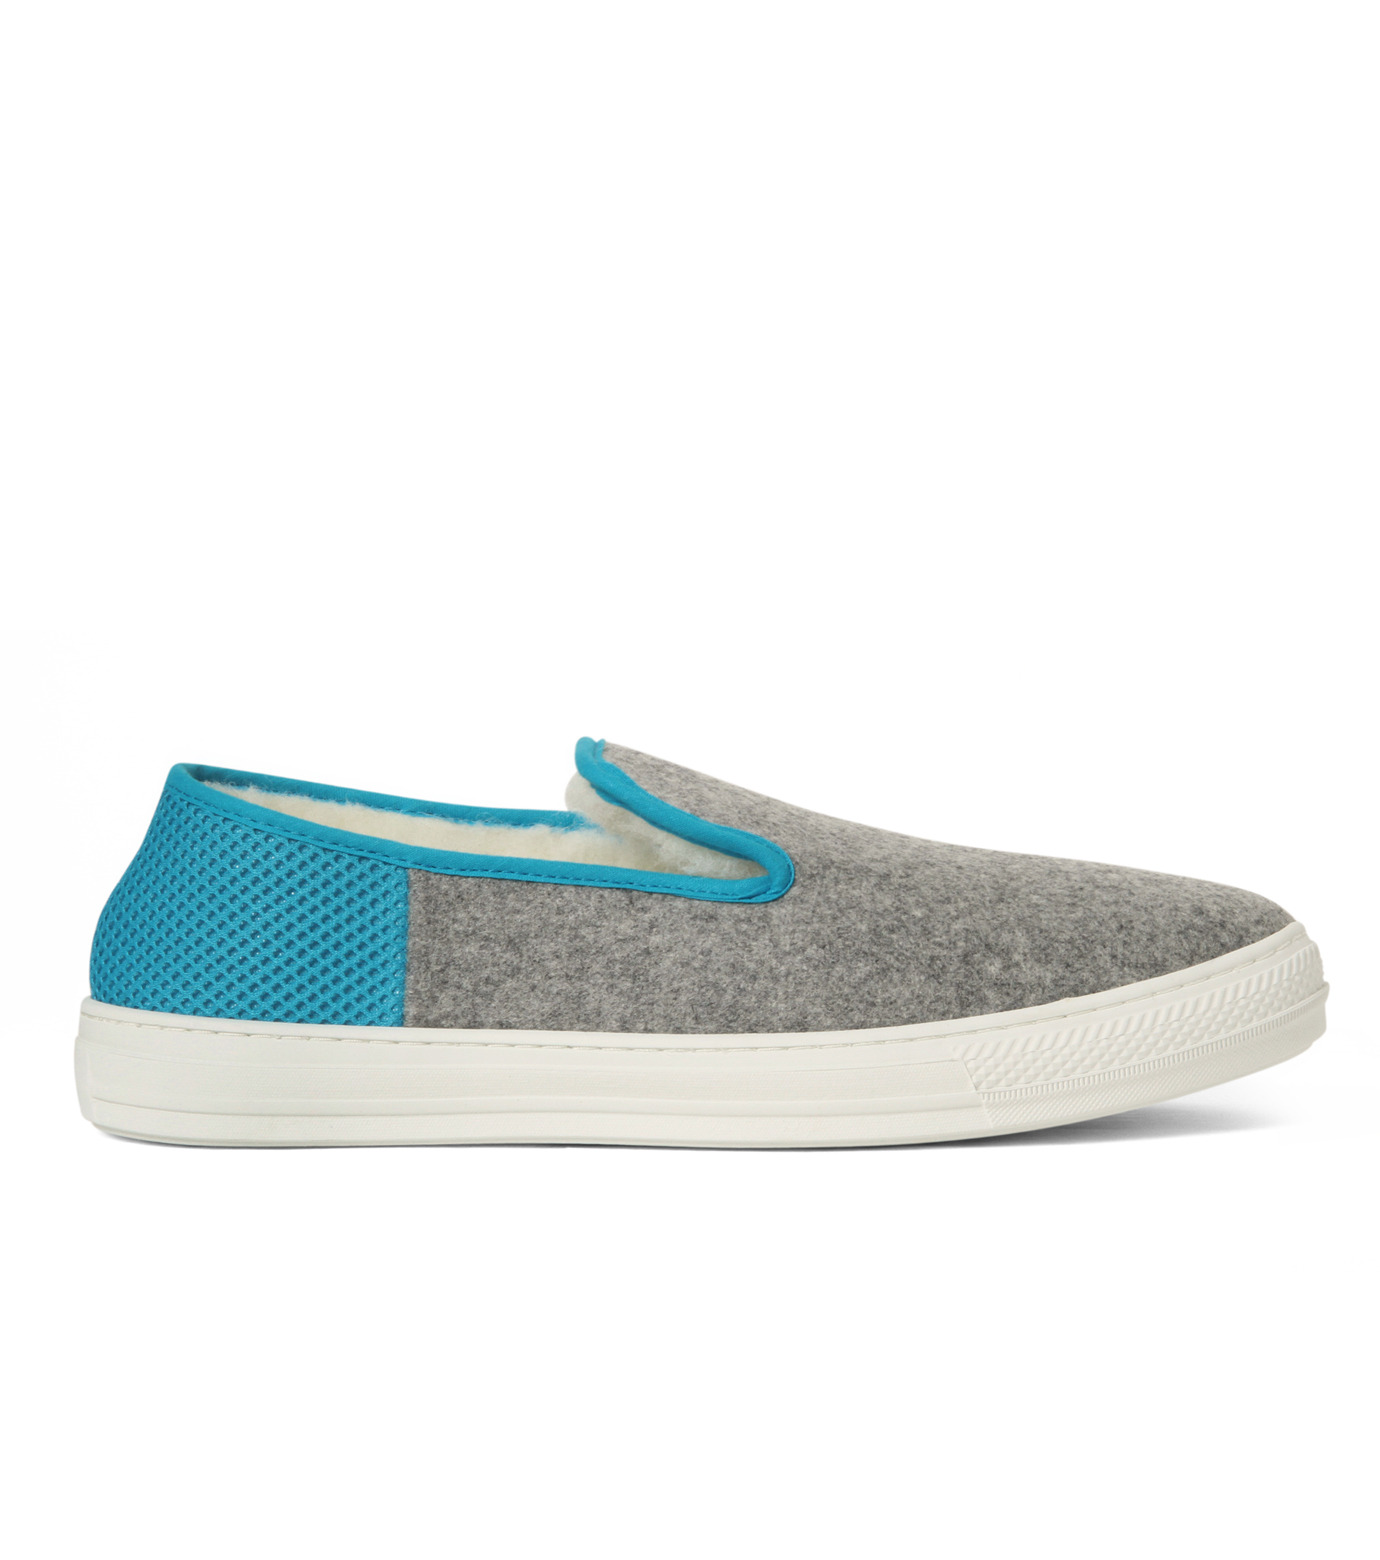 TAISE by SOUSTS(TAISE by SOUSTS)のArsene Turquoise-TURQUOISE(スニーカー/sneaker)-ARSENE-95 拡大詳細画像1